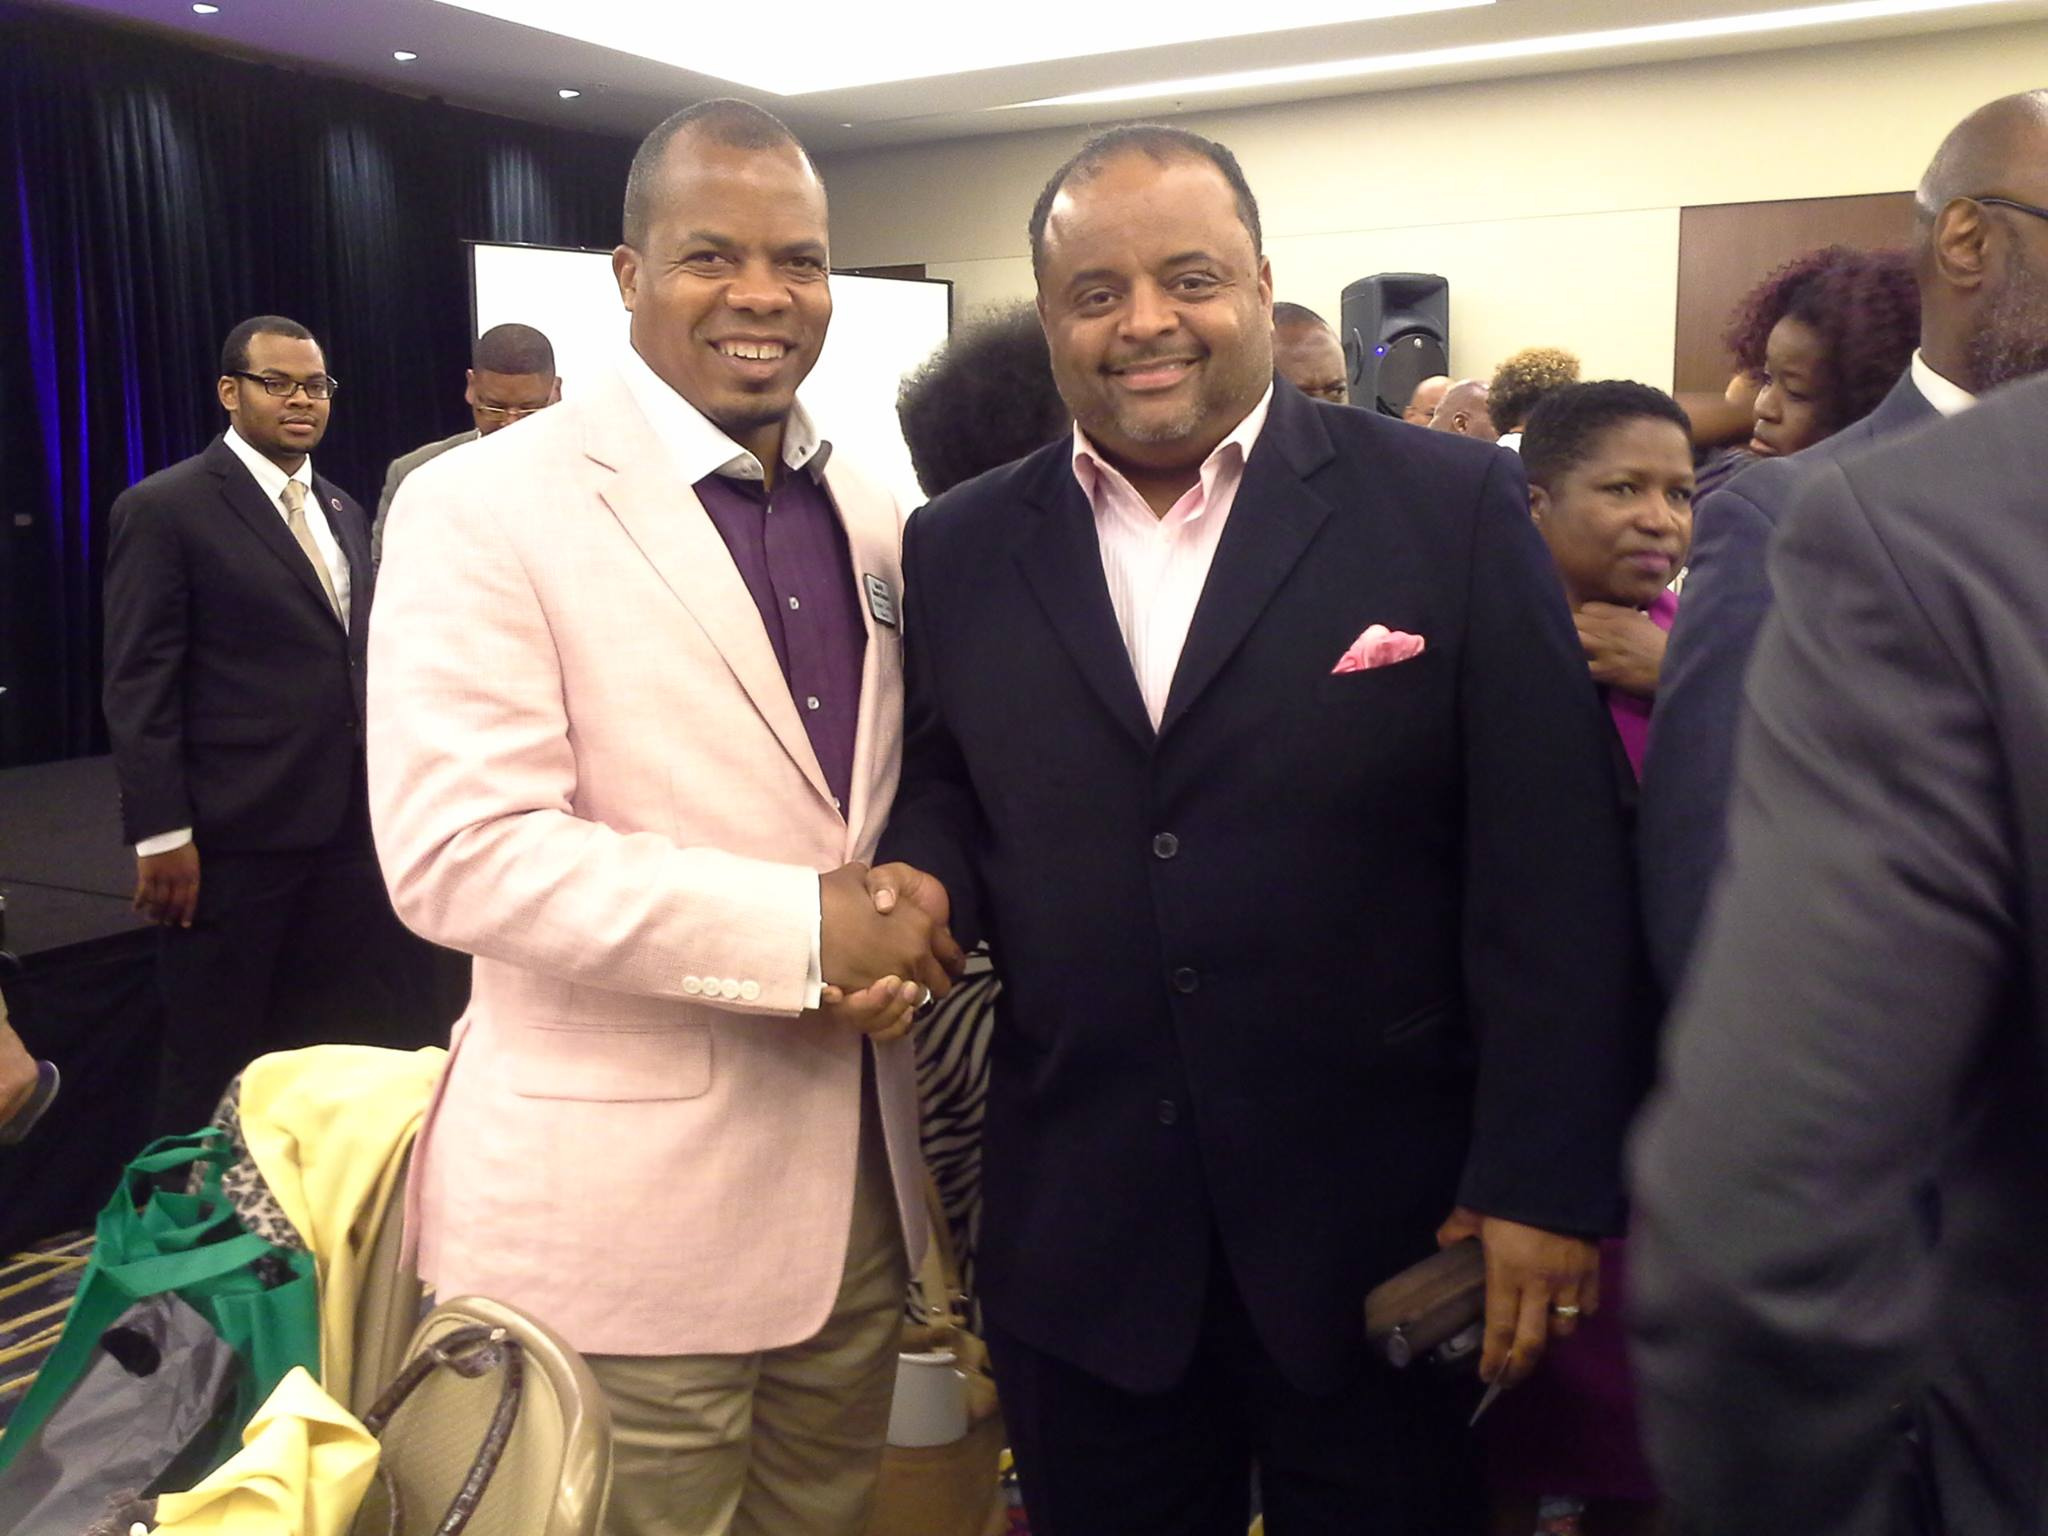 Roland-Martin+Christopher-Herring